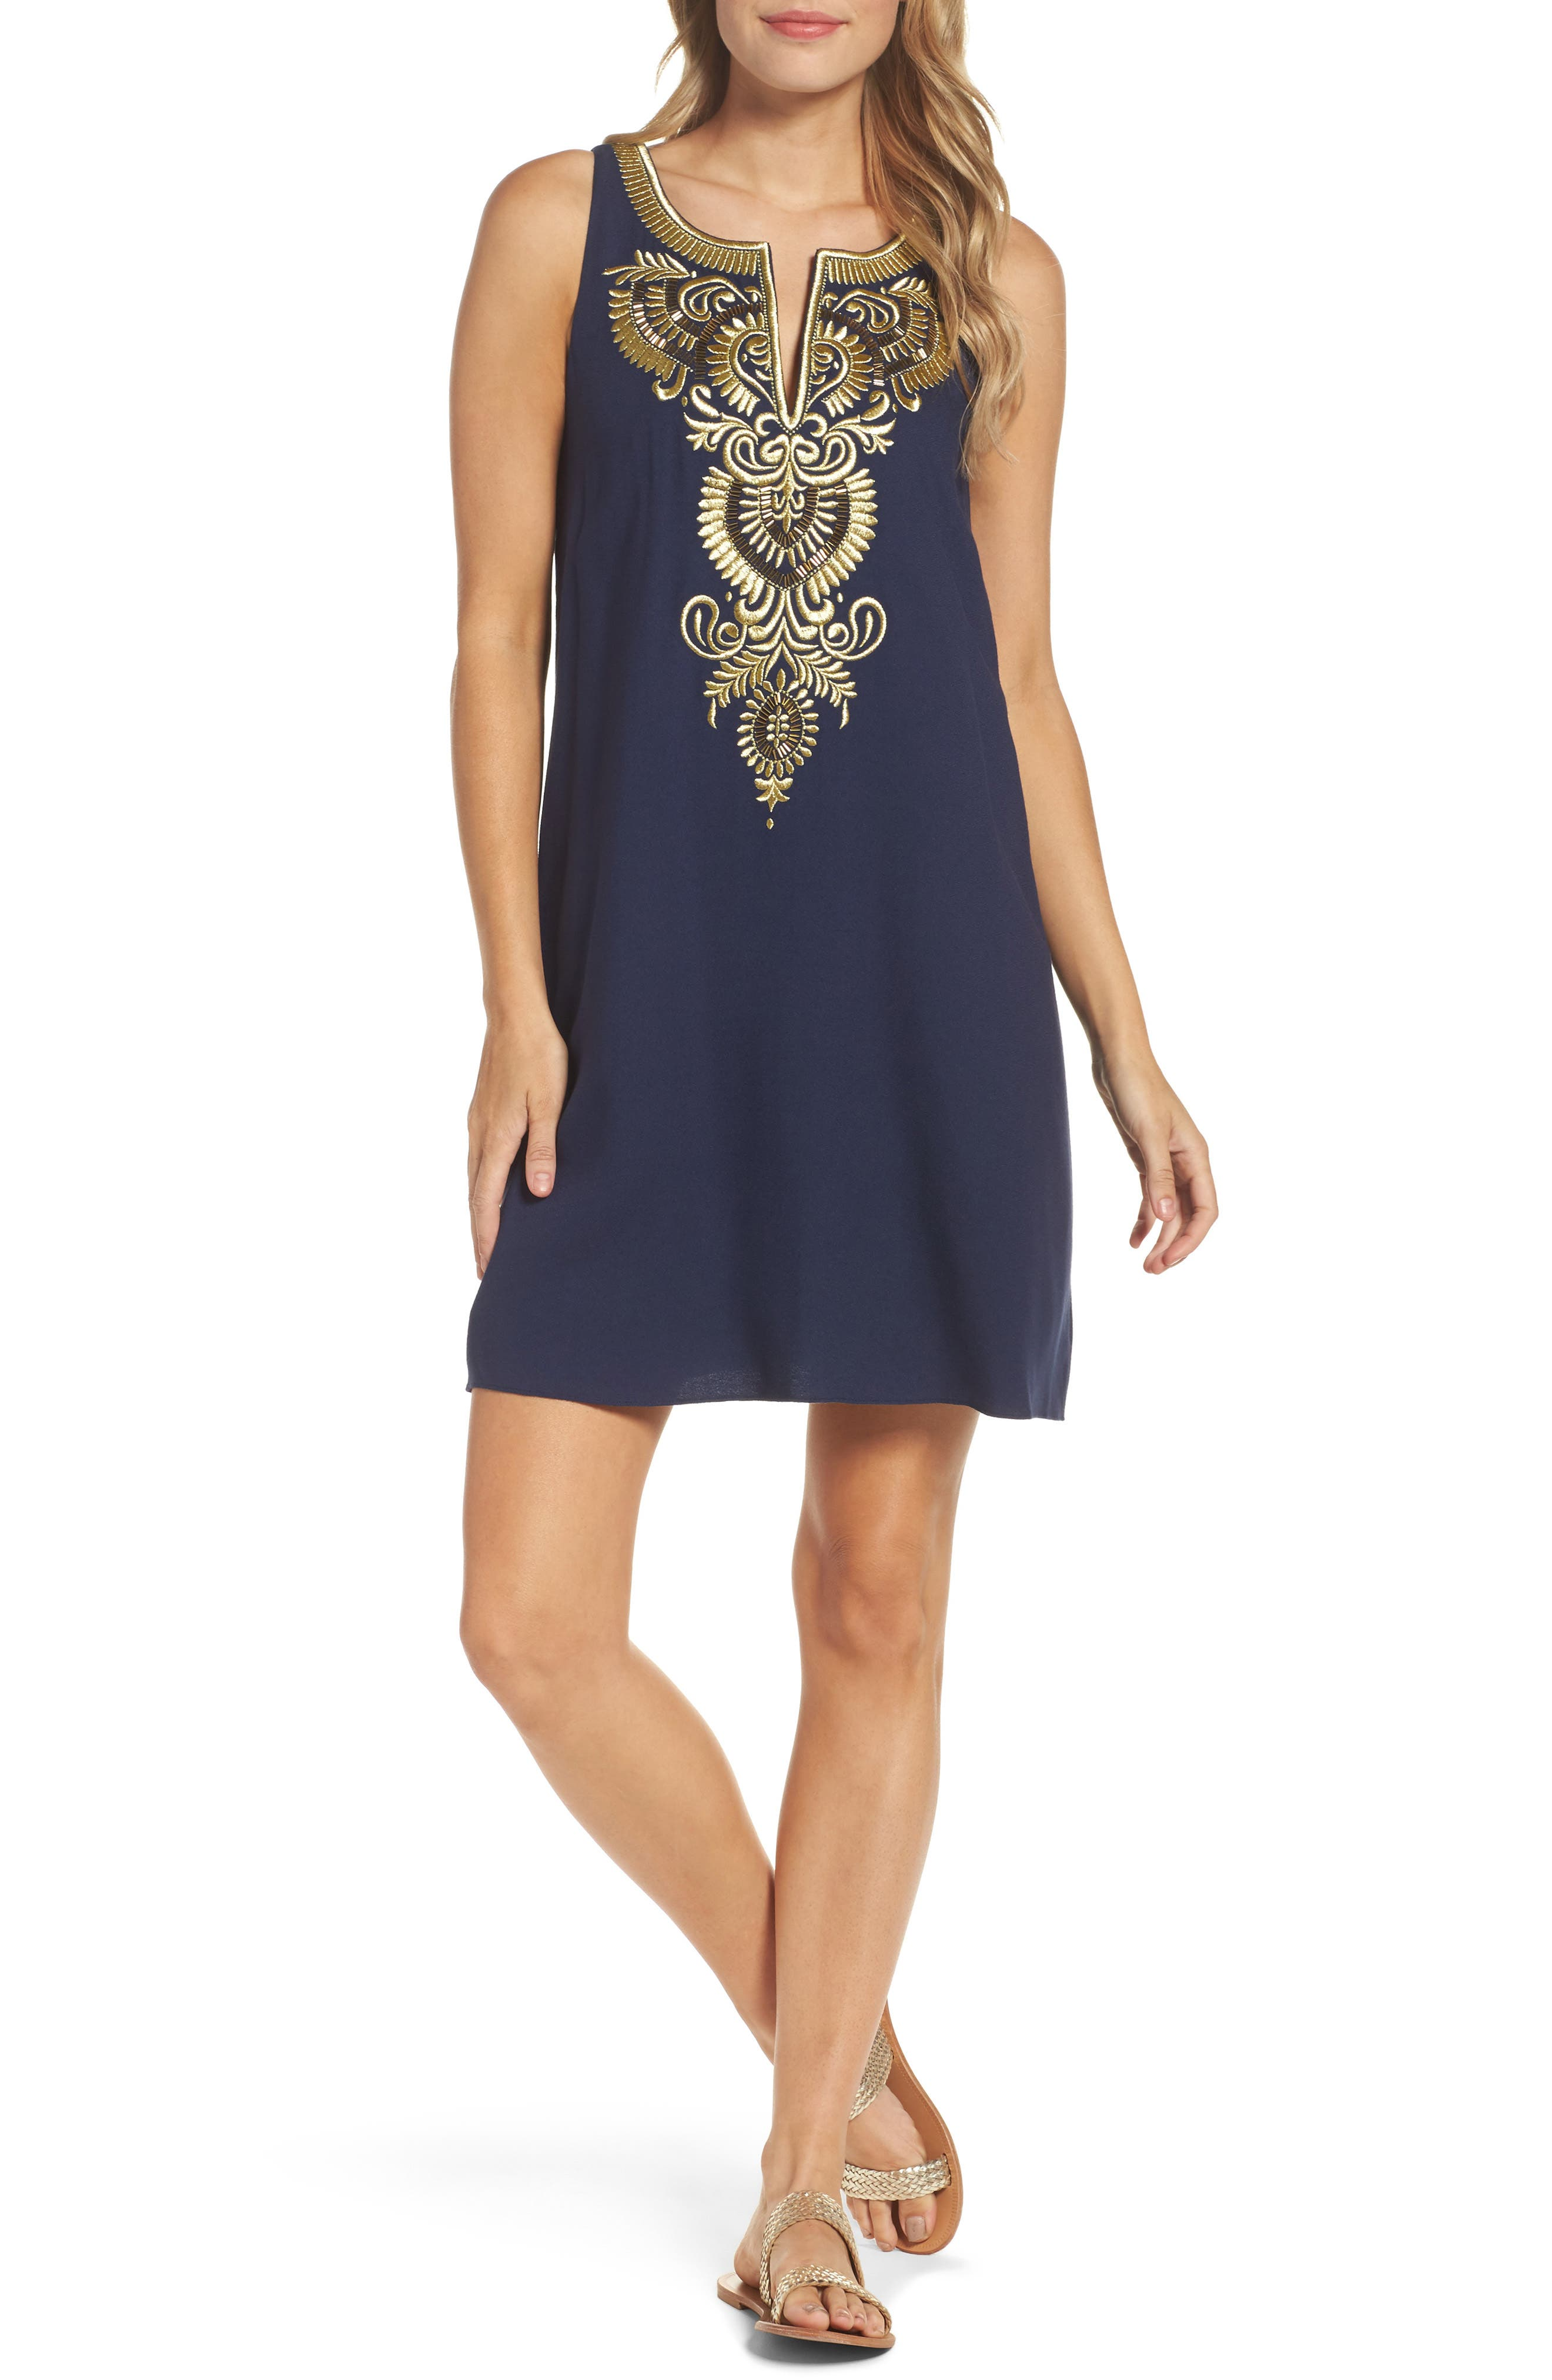 Aubra Embroidered Shift Dress,                         Main,                         color, 408